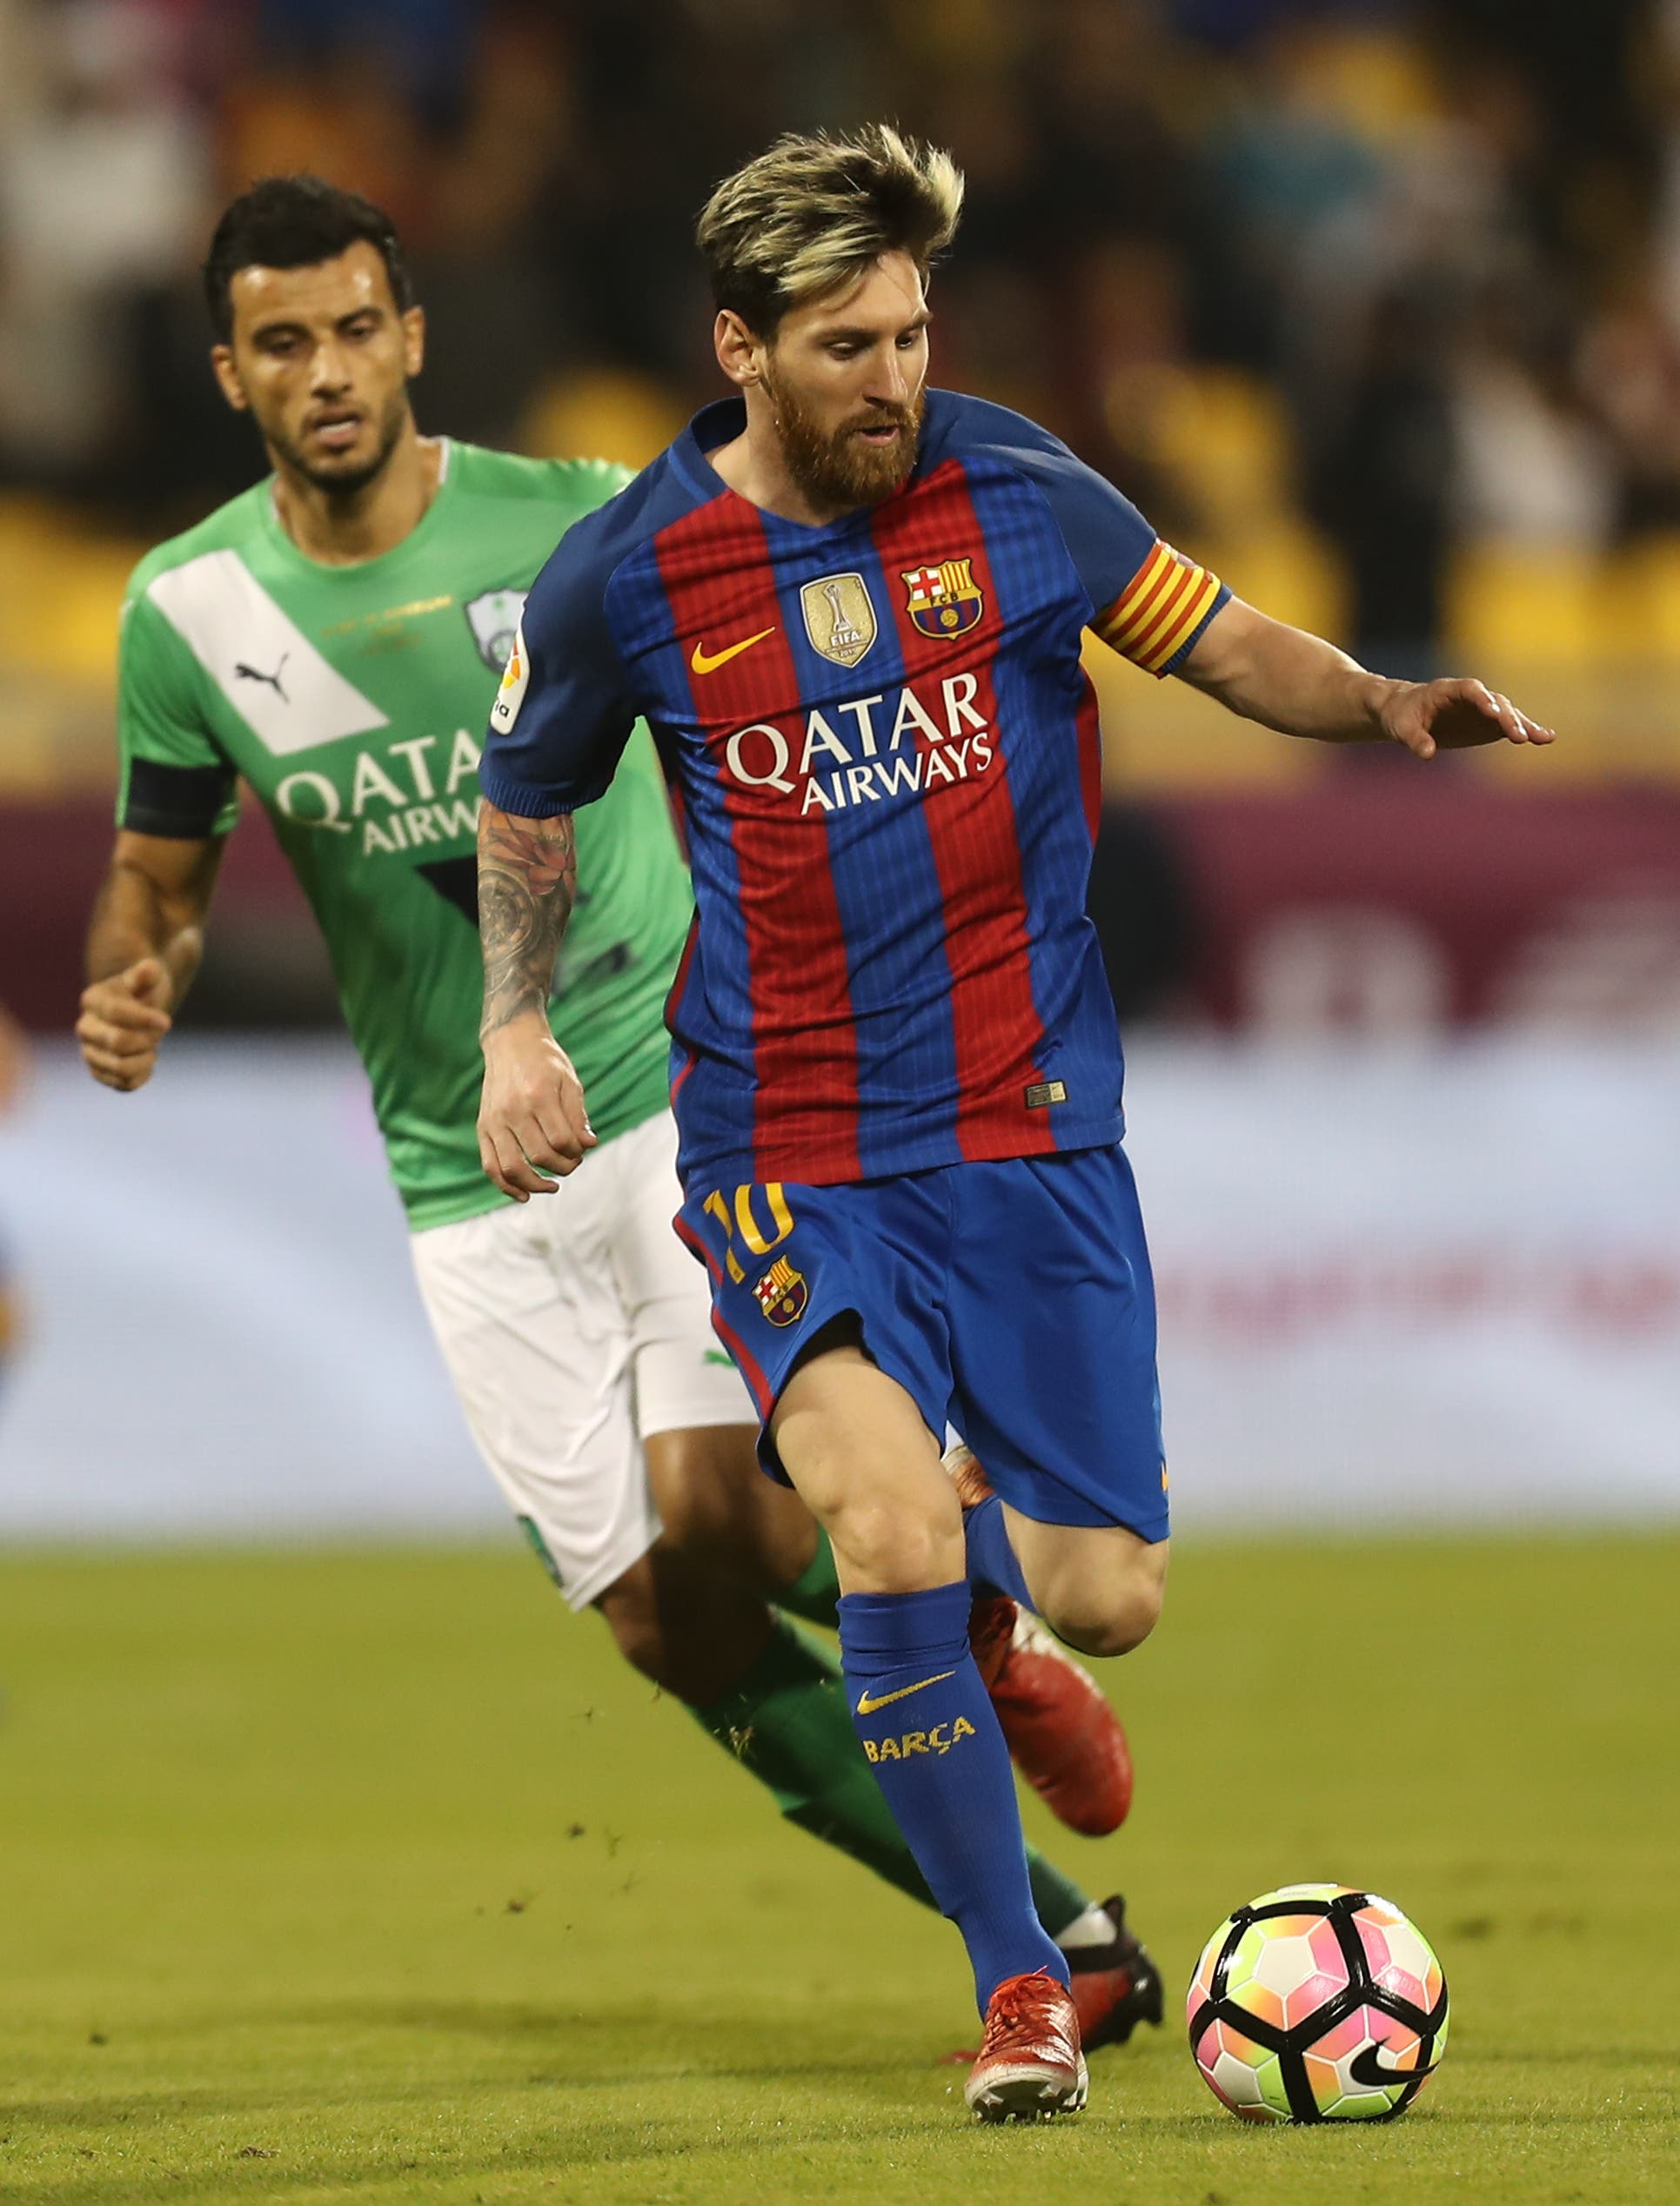 FC Barcelona's Lionel Messi (R) vies with a player of Al-Ahli during a friendly football match between FC Barcelona and Saudi Arabia's Al-Ahli FC on December 13, 2016 in the Qatari capital Doha. (AFP)